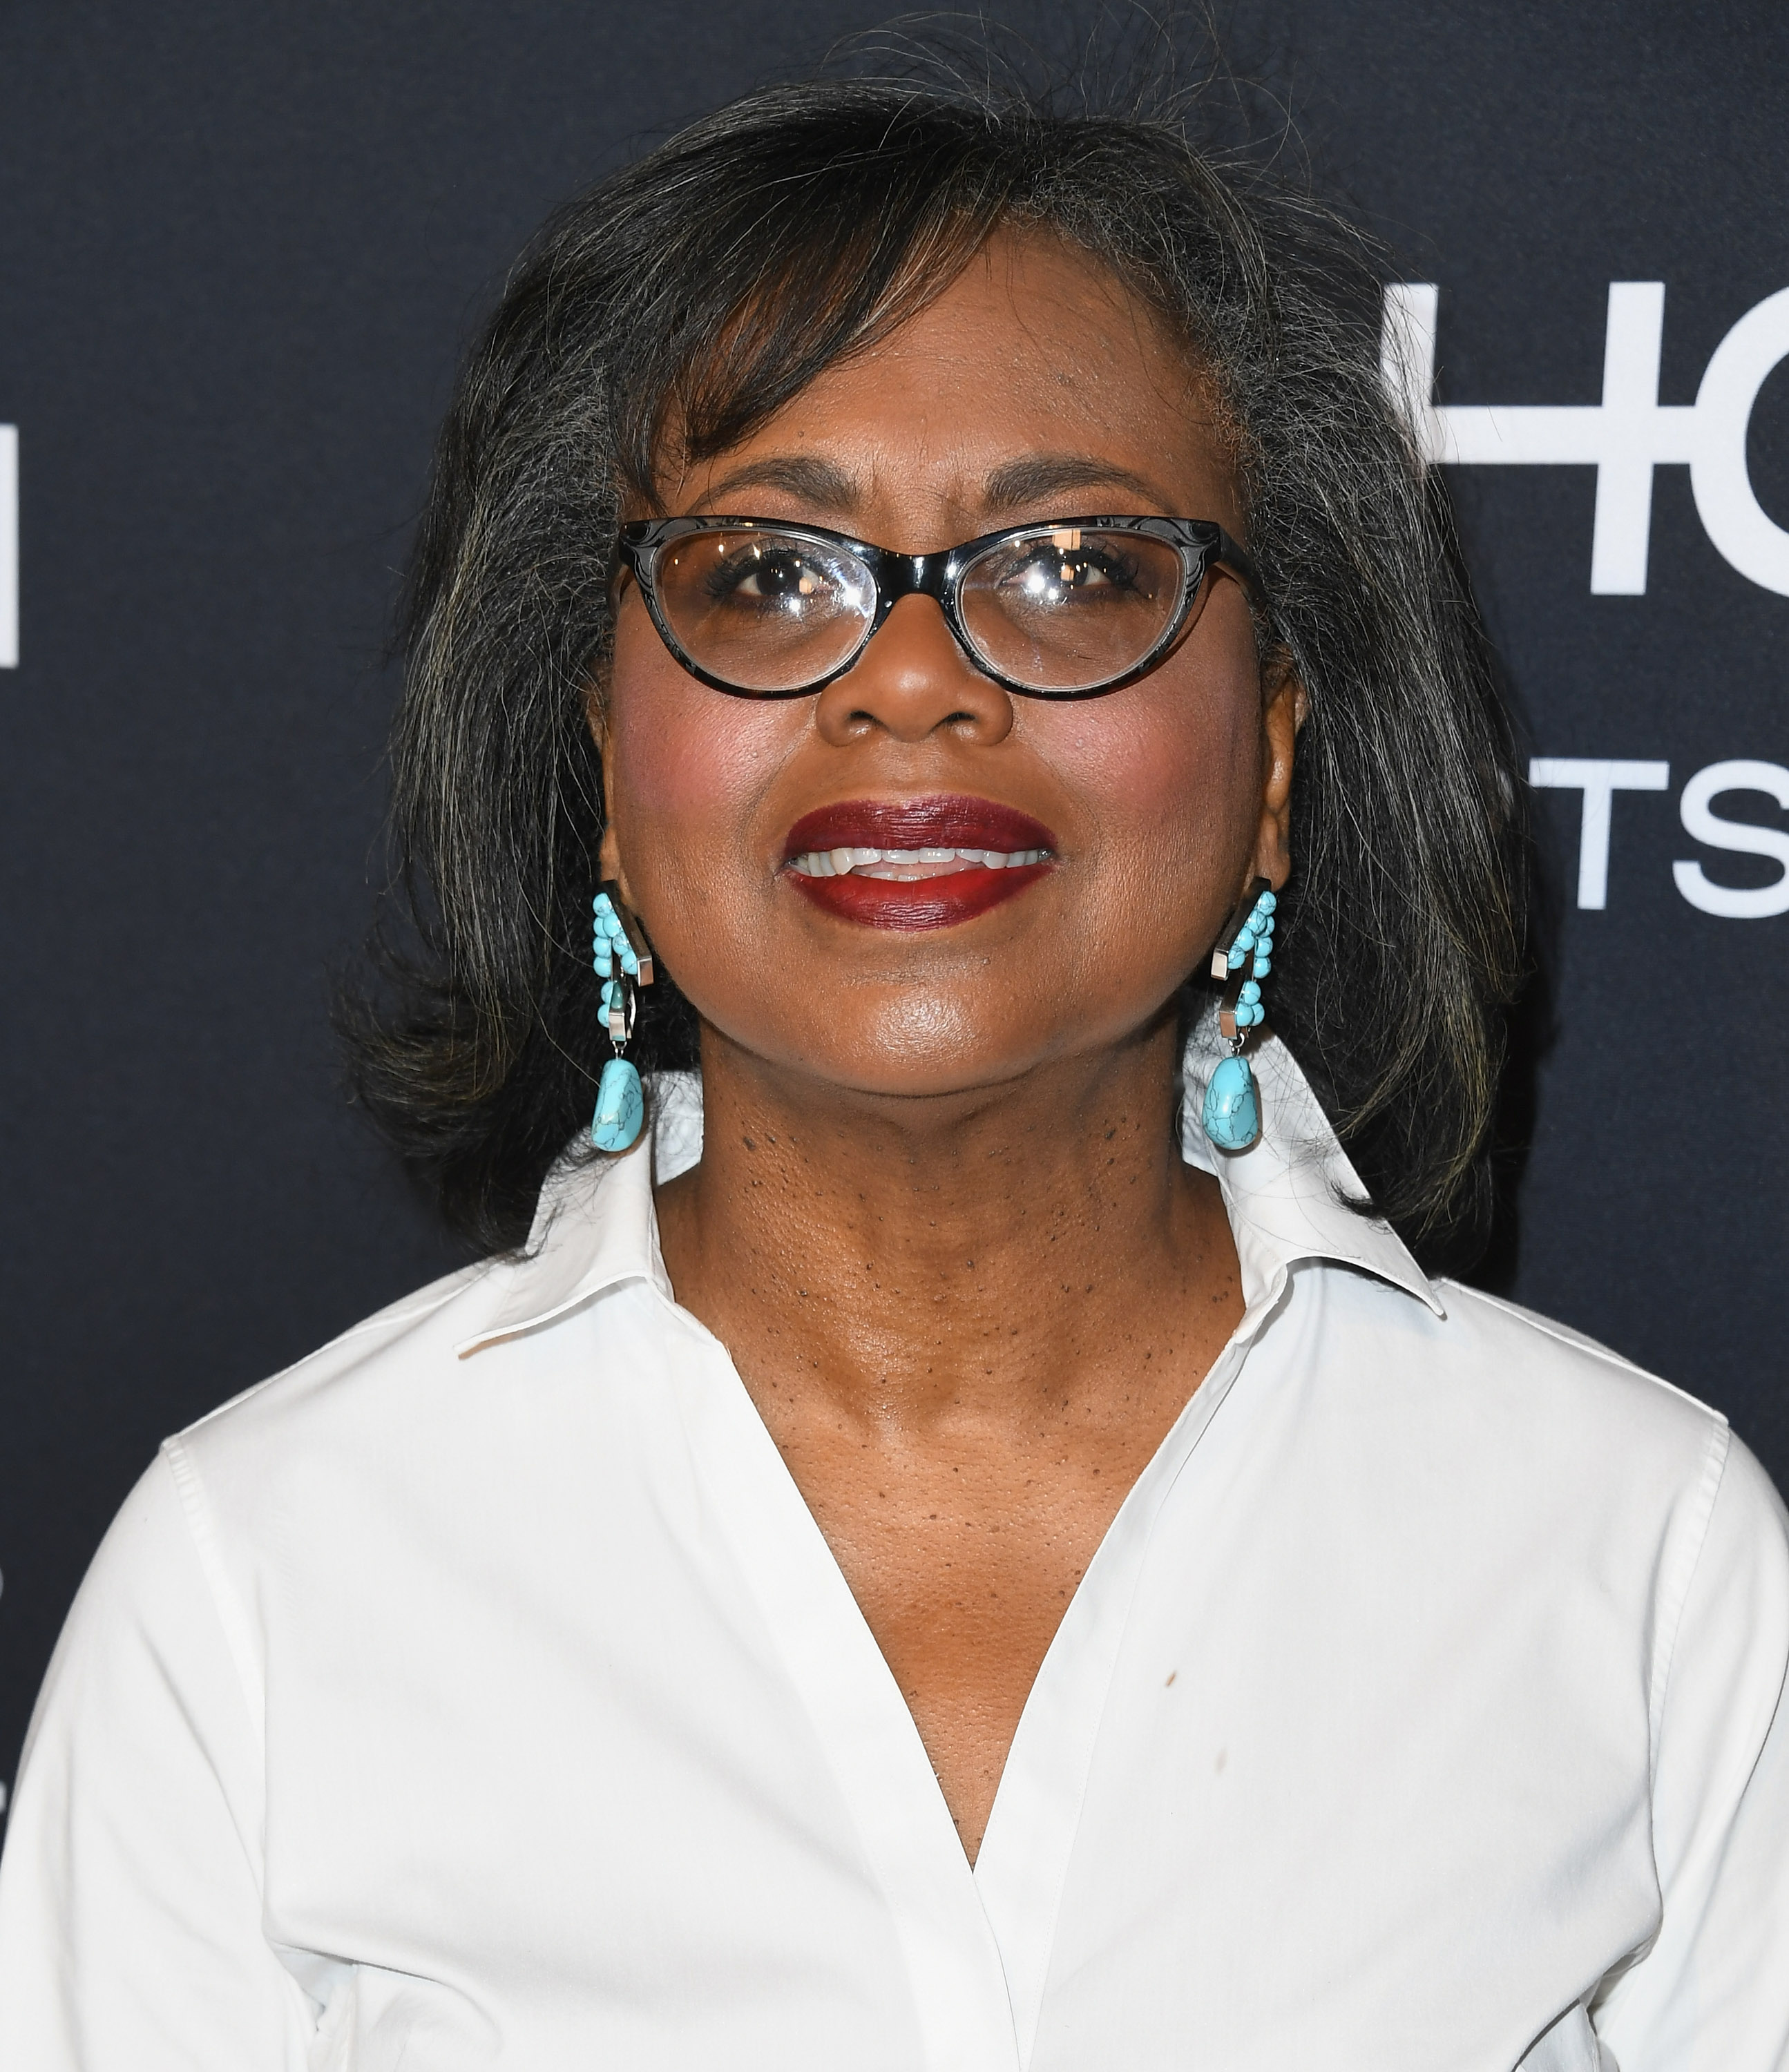 LOS ANGELES, CA - OCTOBER 15:  Anita Hill attends the 25th Annual ELLE Women In Hollywood Celebration at Four Seasons Hotel Los Angeles at Beverly Hills on October 15, 2018 in Los Angeles, California.  (Photo by Jon Kopaloff/FilmMagic)